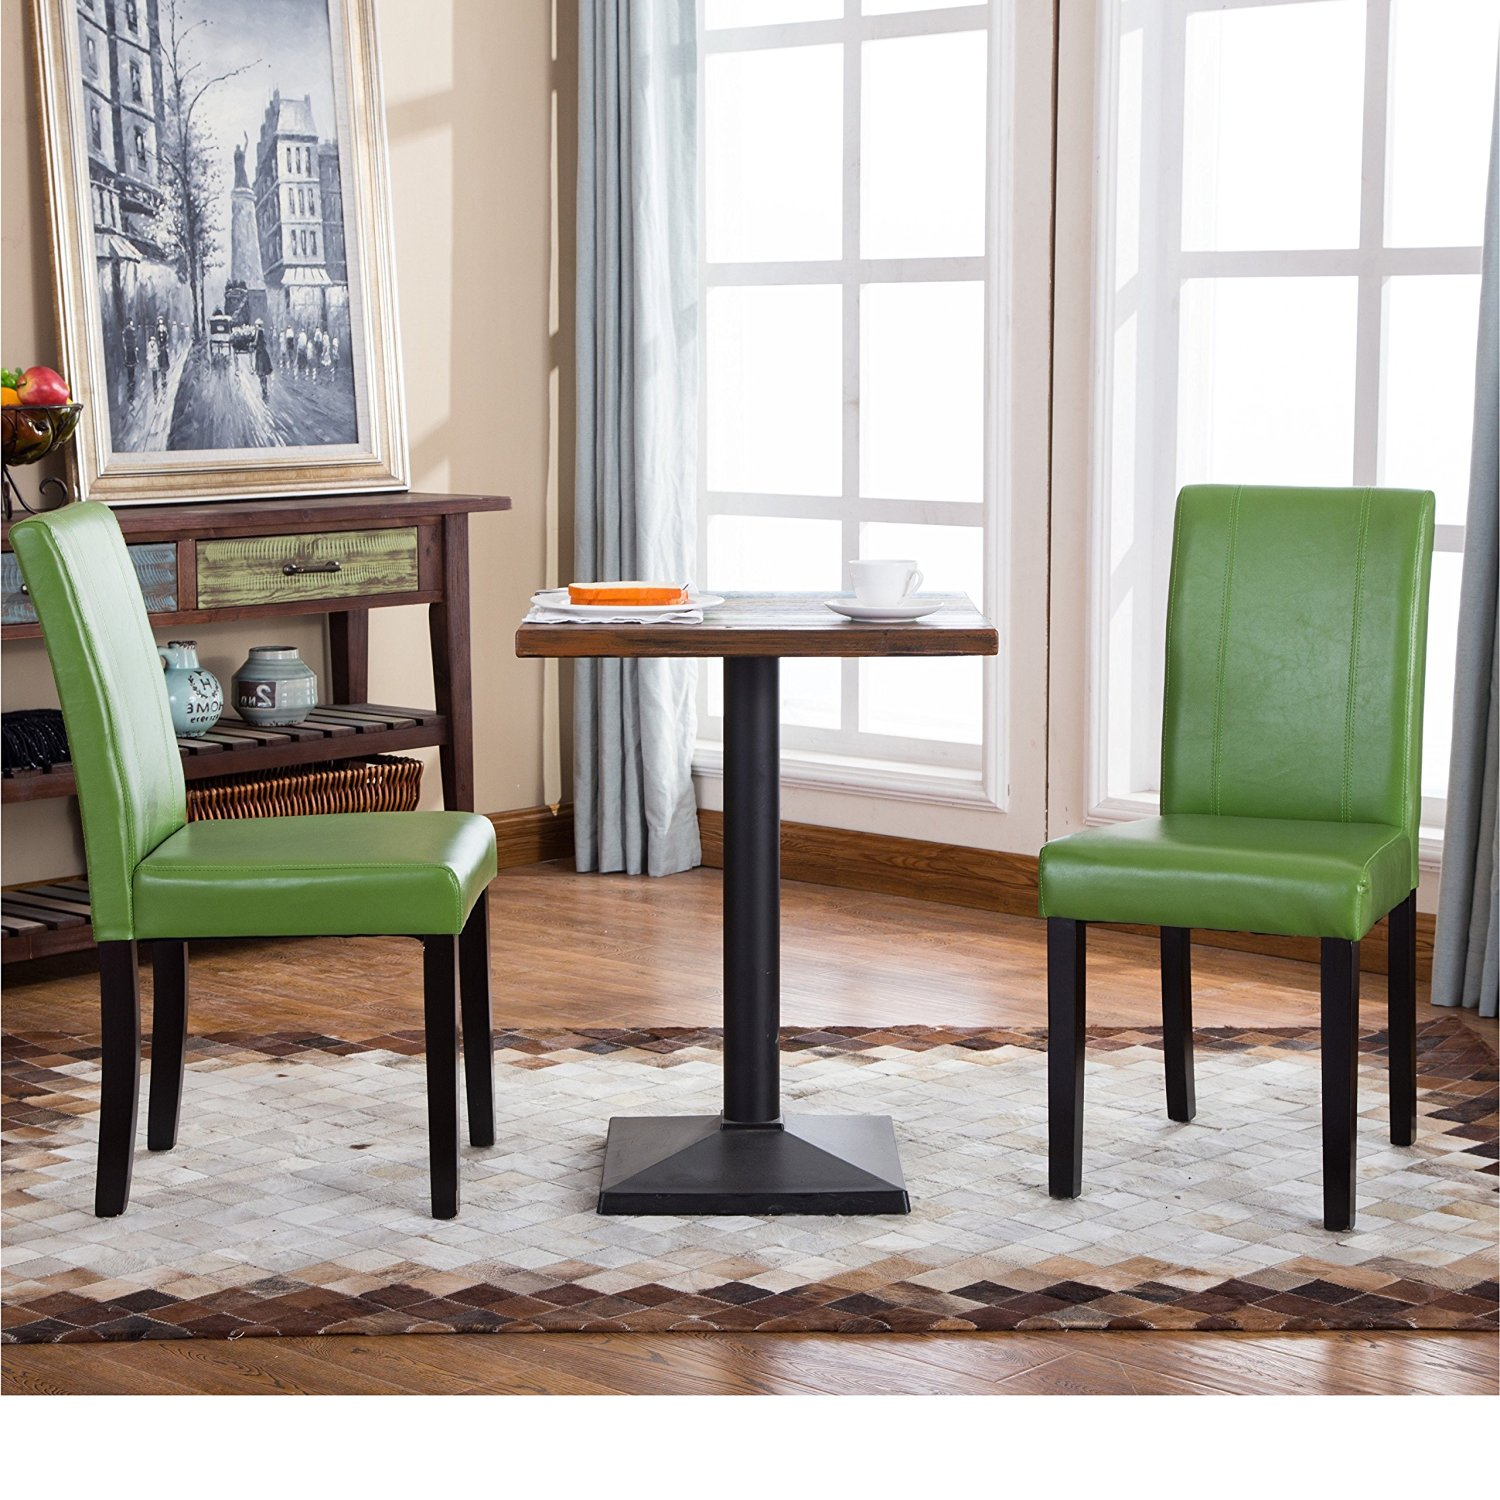 Get Quotations · 2 Piece Green Dining Chairs, Faux Leather Wood Material,  Contemporary Casual Urban Style,